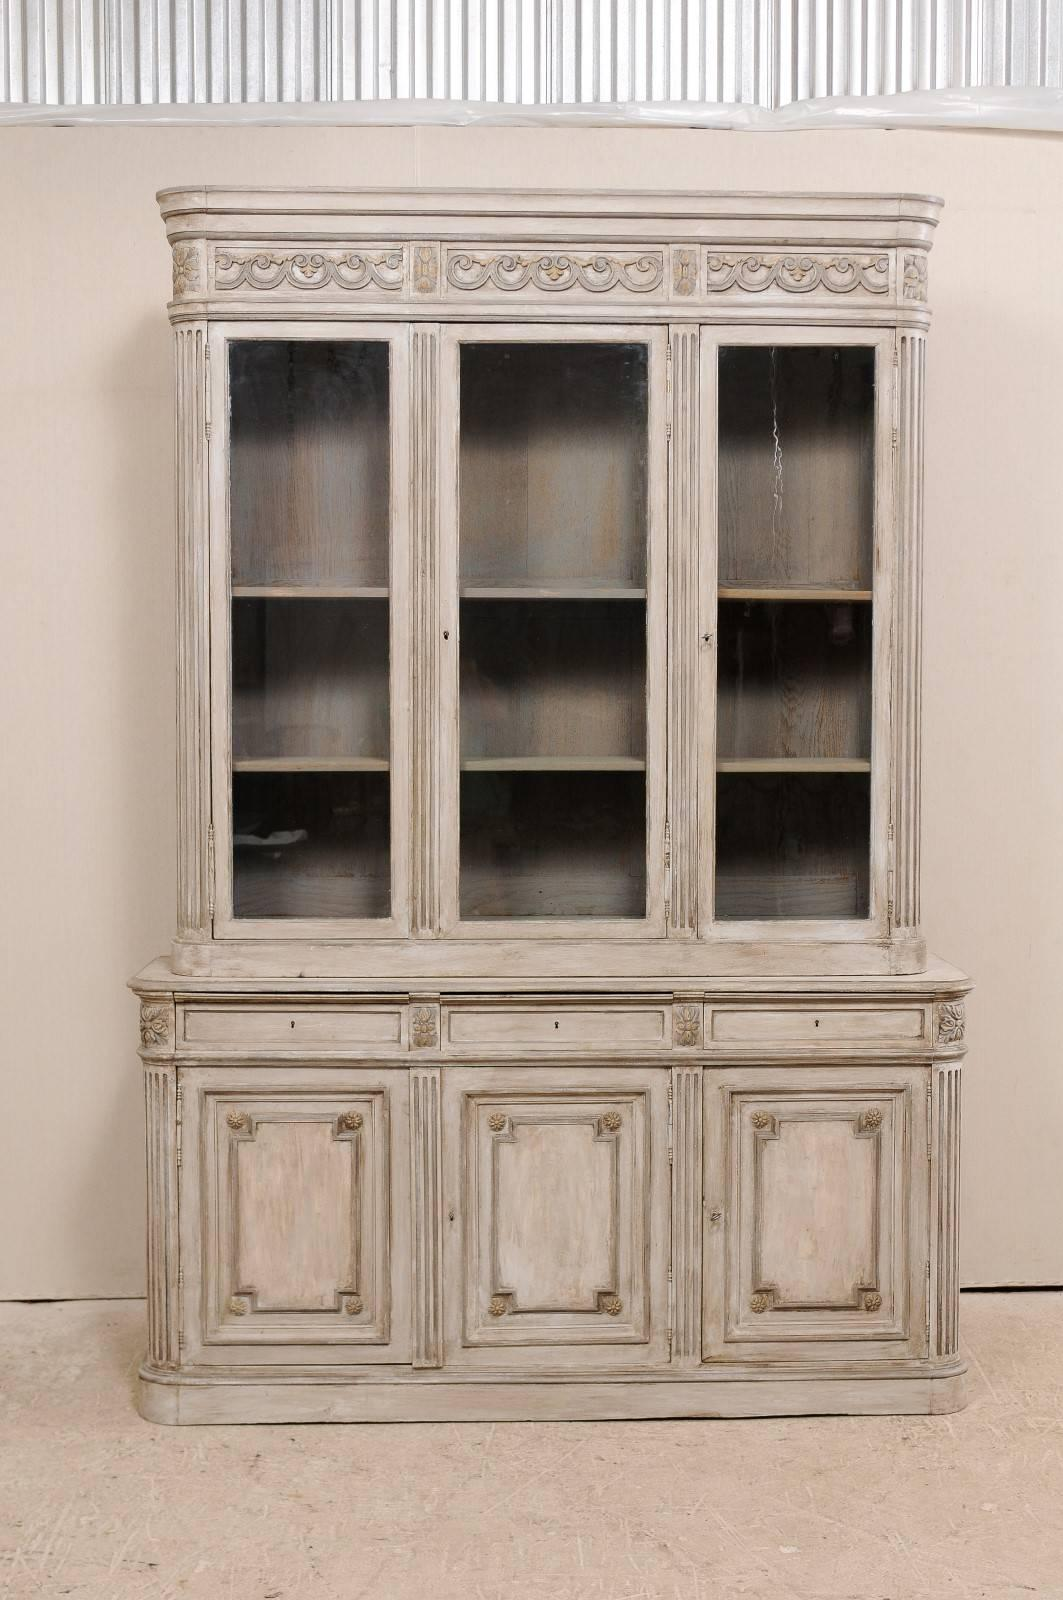 A 19th Century French Tall Wood And Glass Cabinet. This Tall French Antique  Cabinet Has